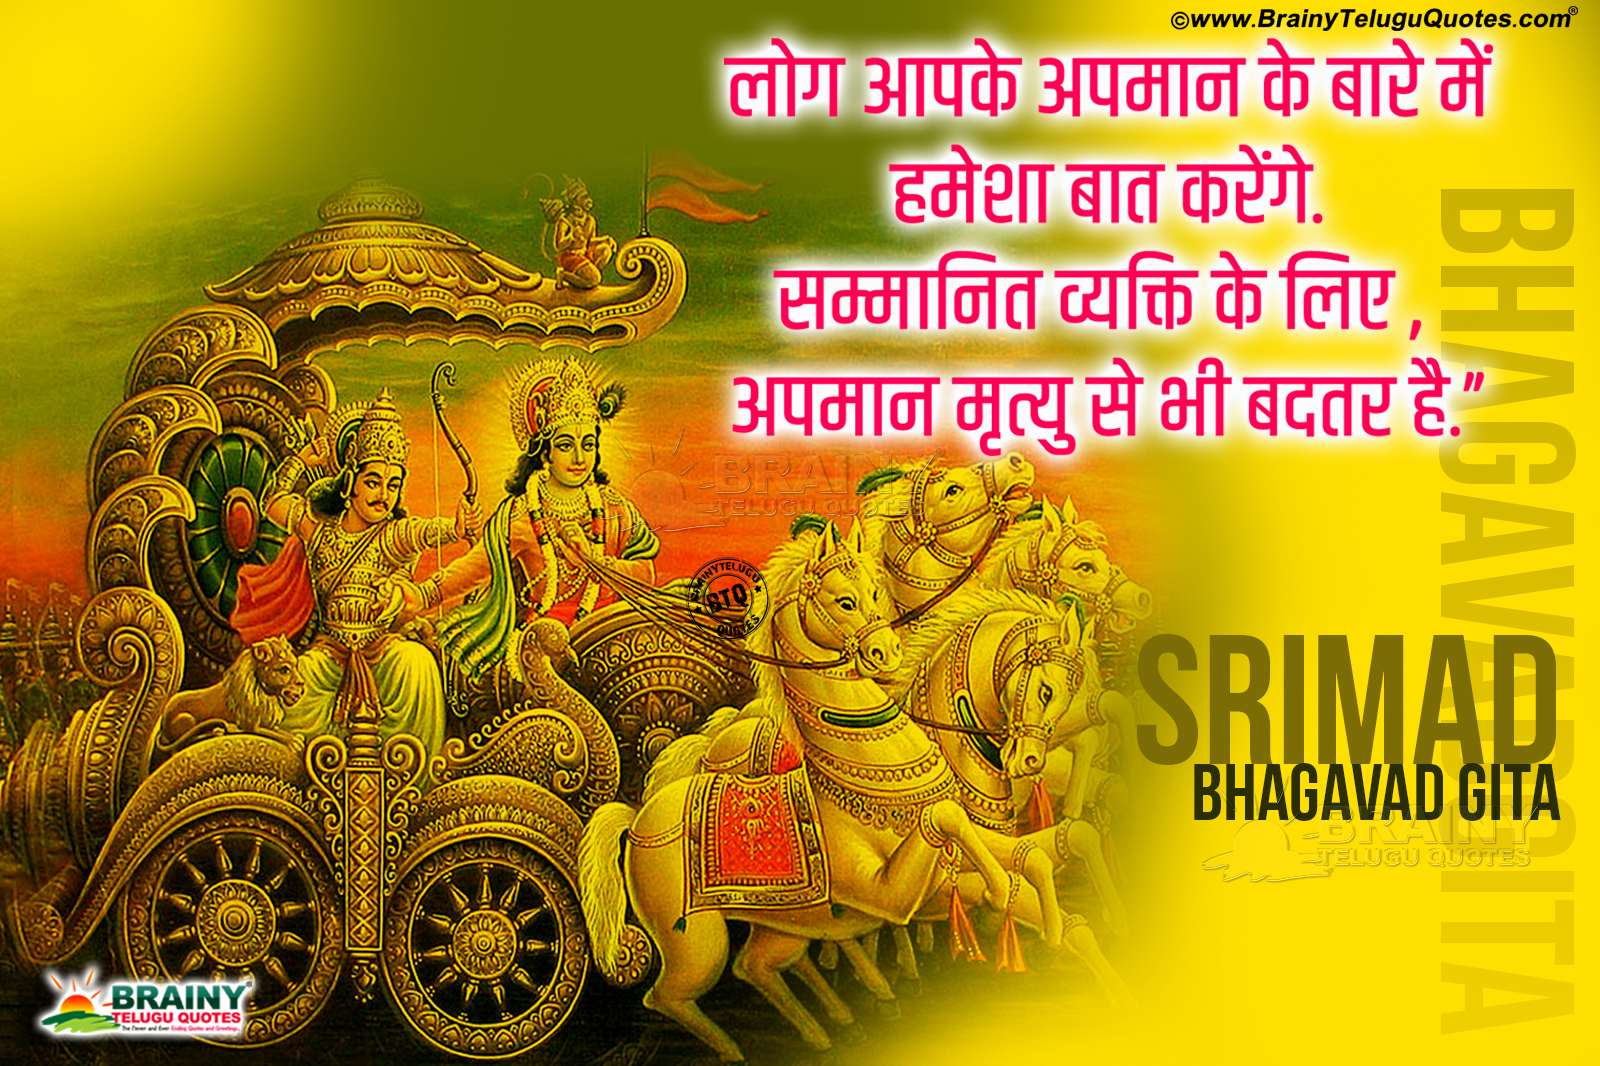 Bhagavad Gita Pdf In Hindi Download